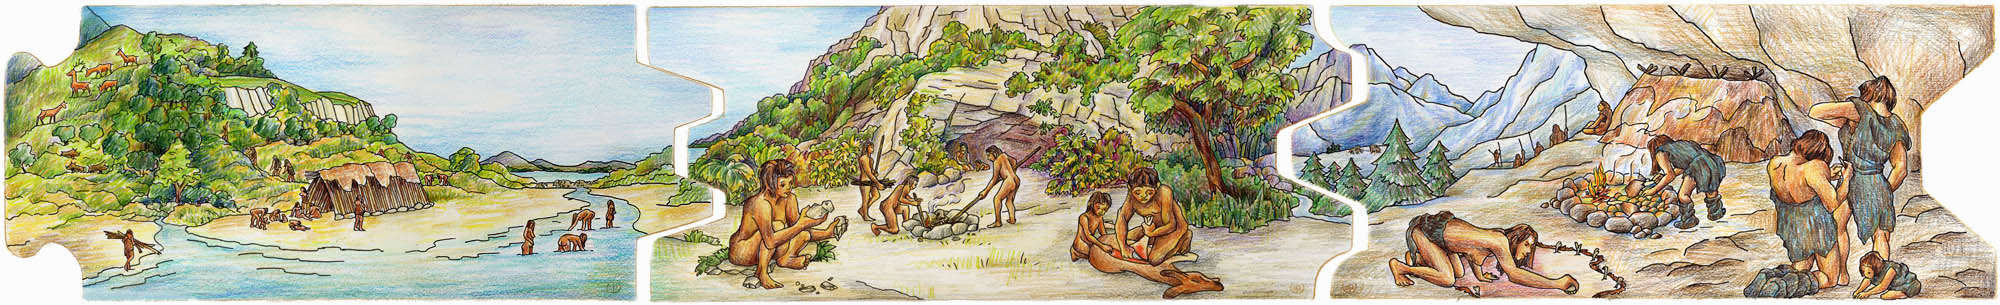 from 1 million to 22.000 years ago 7-9